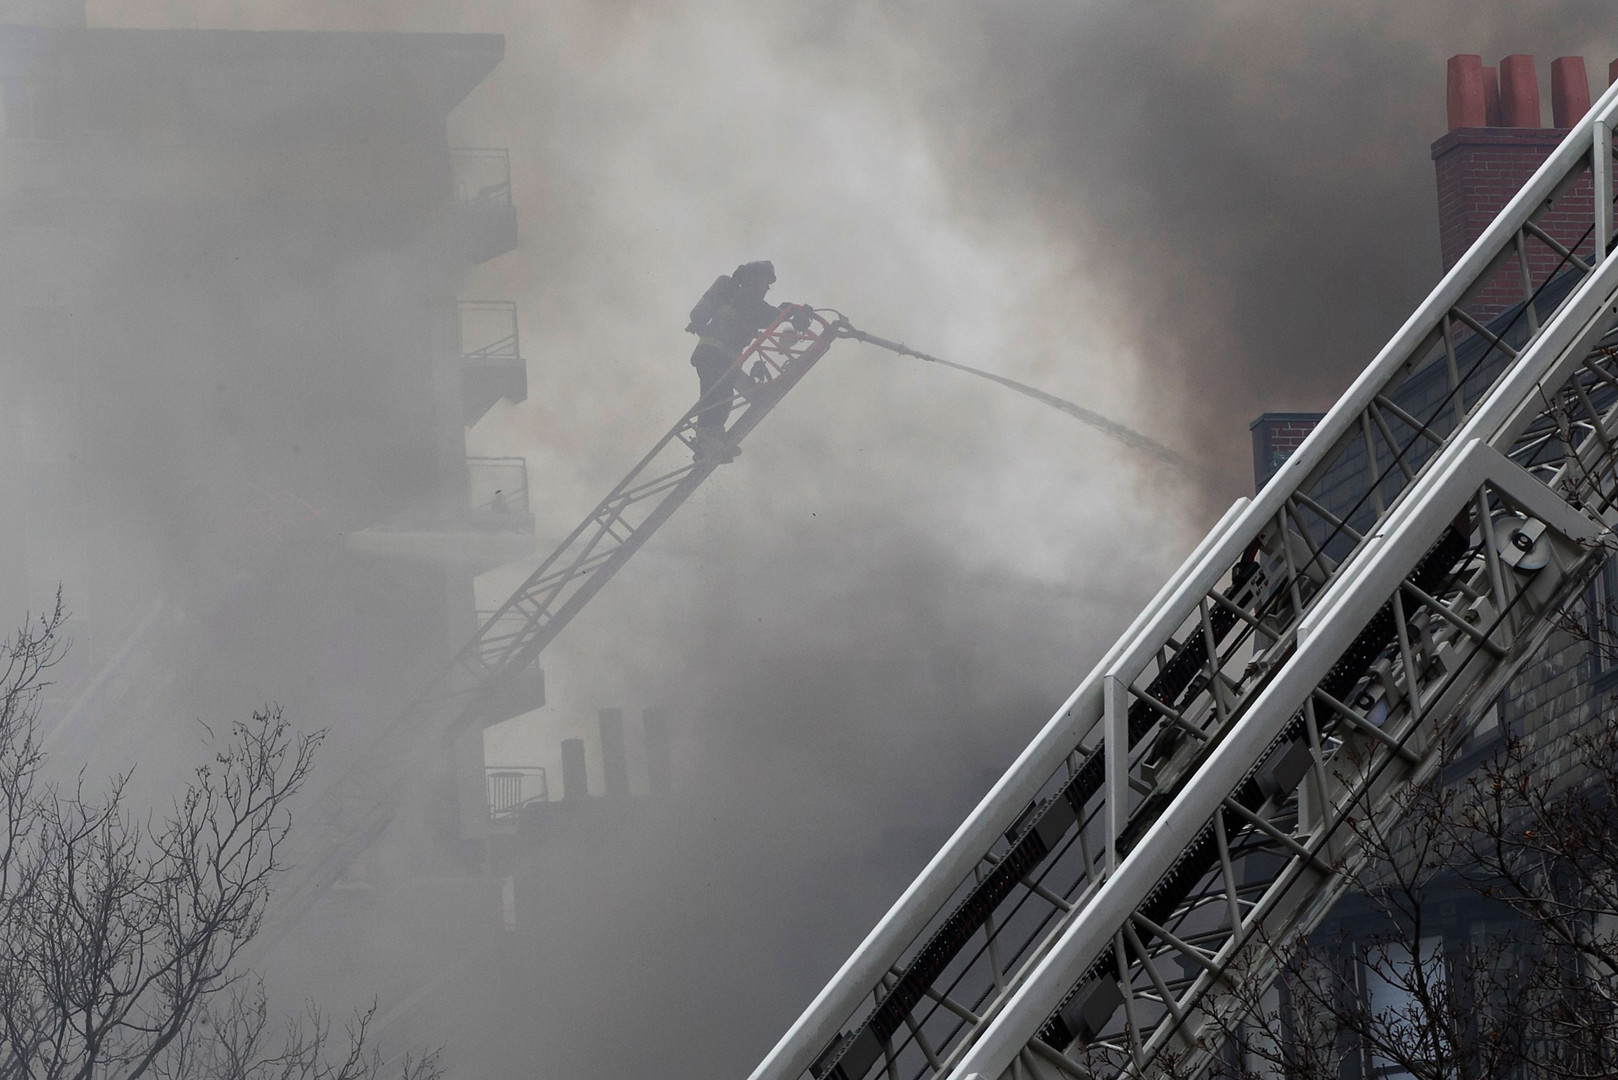 Boston firefighters respond to a 9 alarm fire in the Back Bay which ultimately took the lives of two firefighters